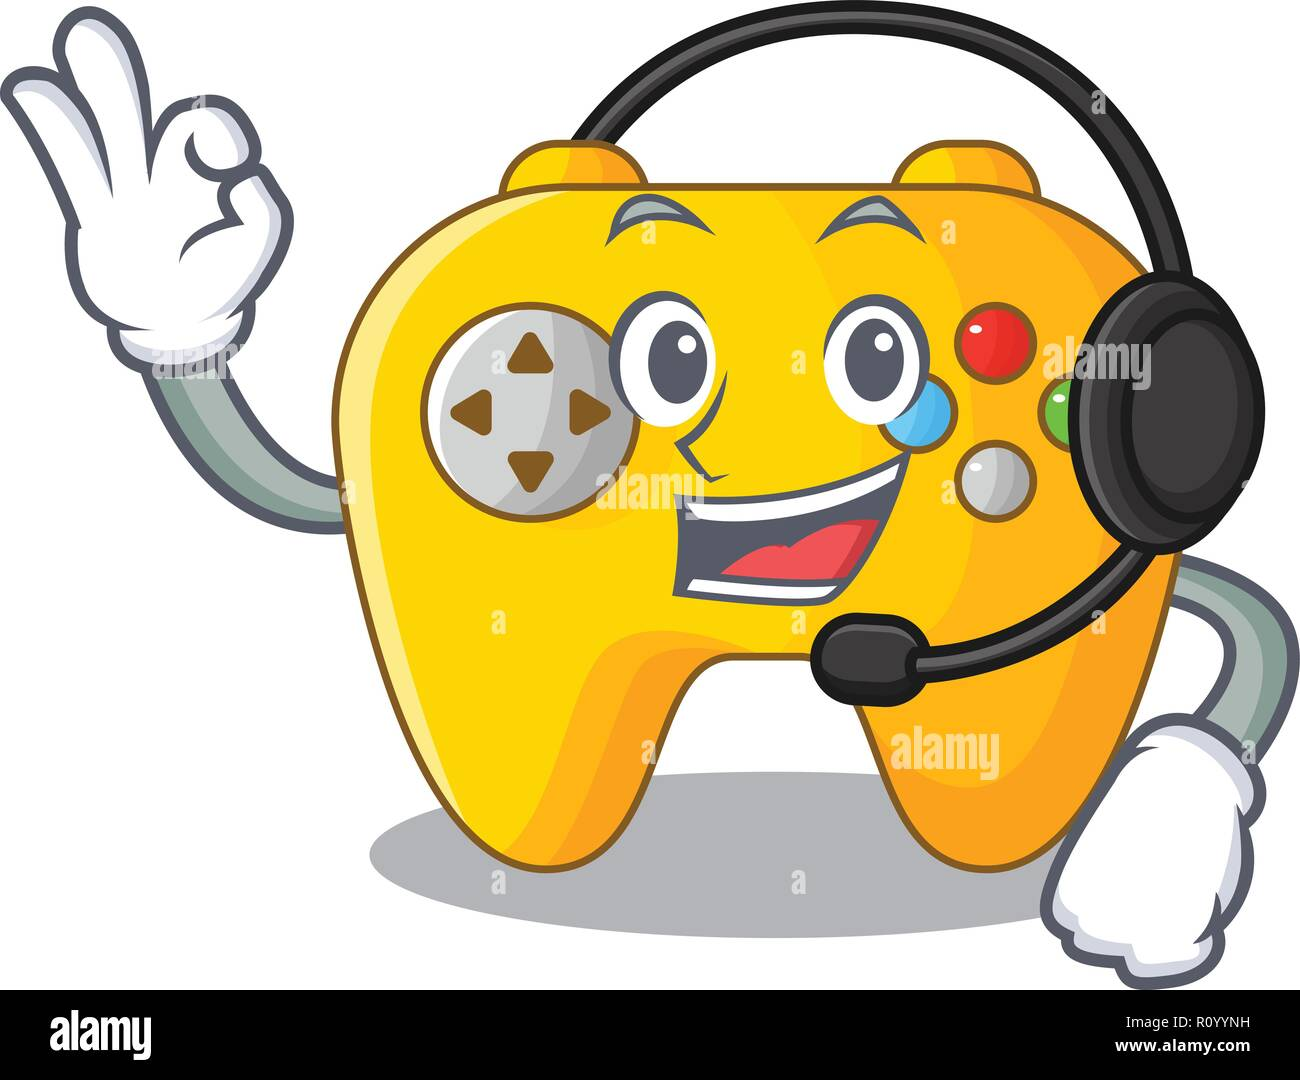 With headphone retro computer game control on mascot Stock